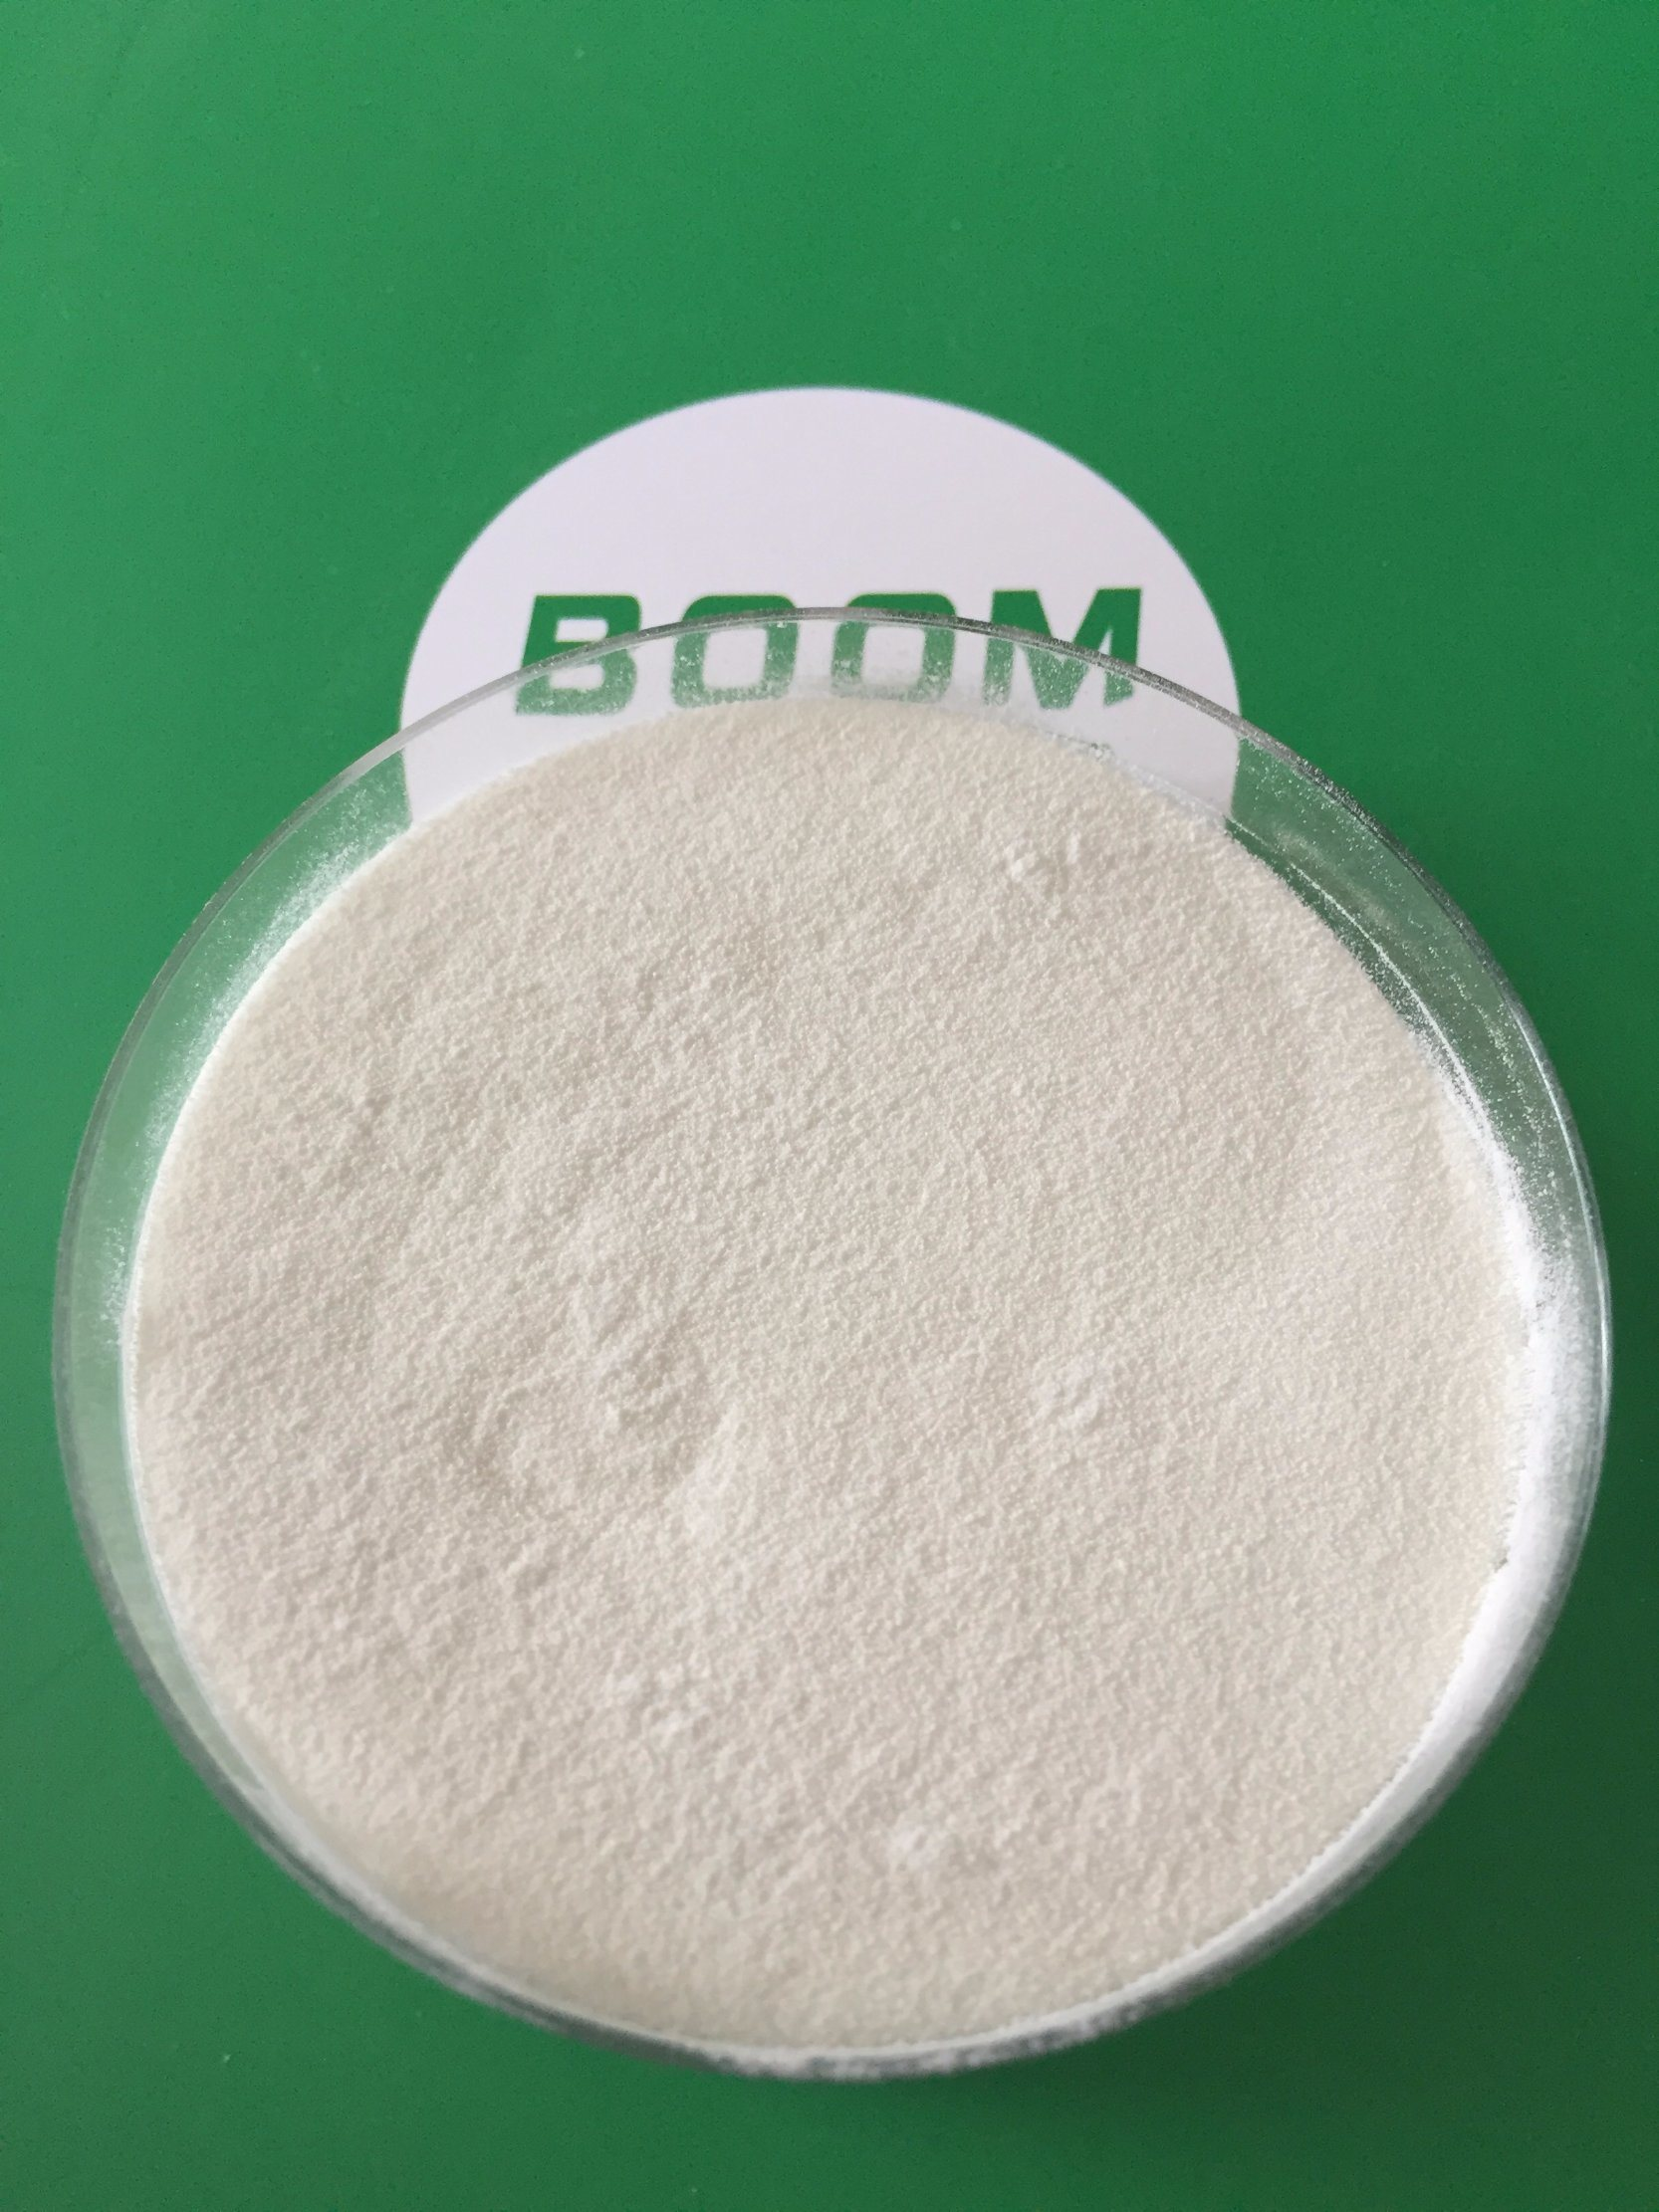 High Quality Best Brand Corn Starch at Factory Price